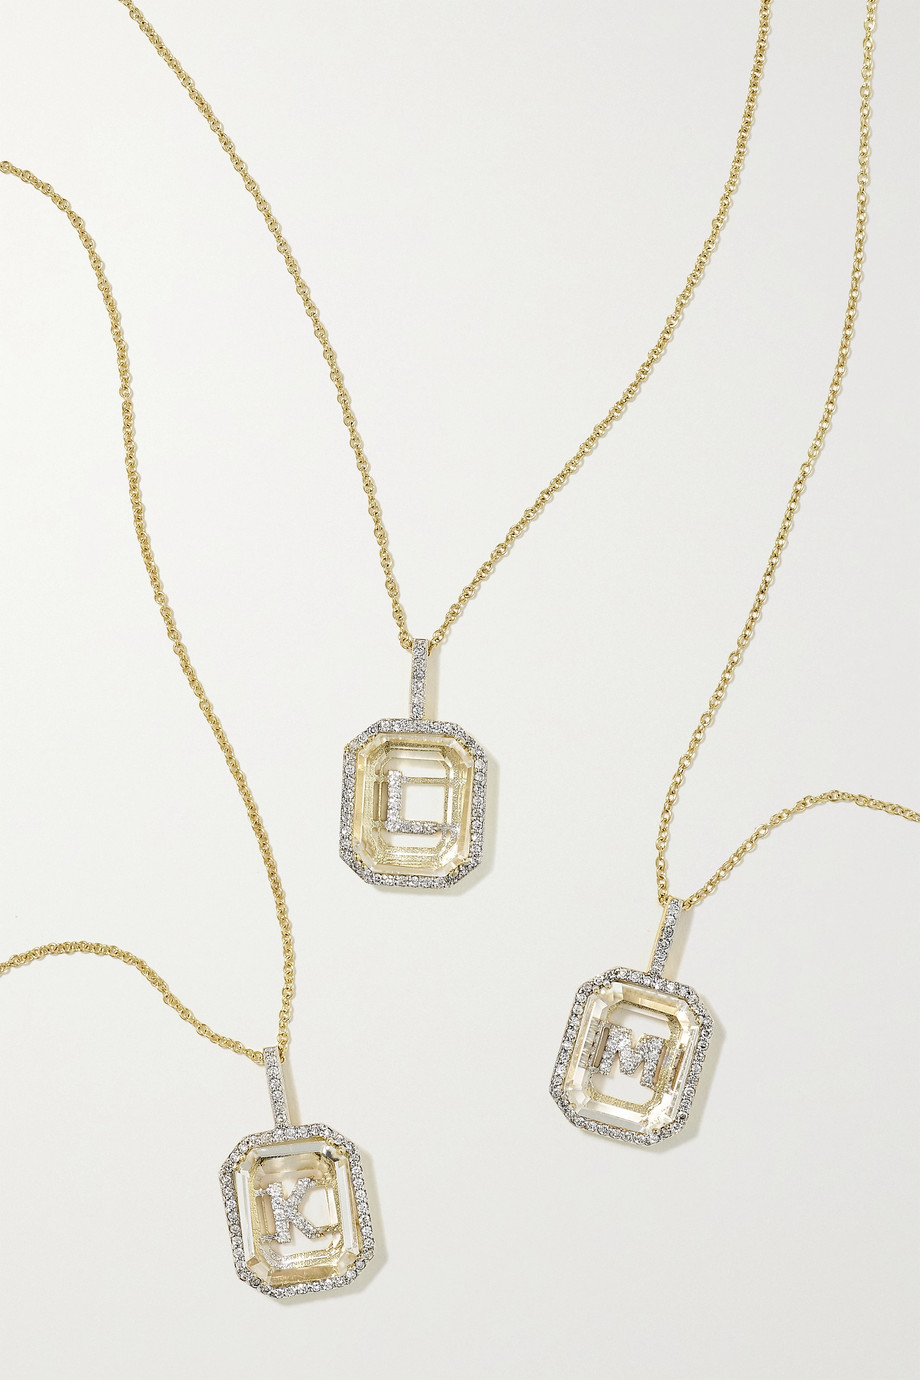 Mateo Collier en or 14 carats, quartz et diamants Initial